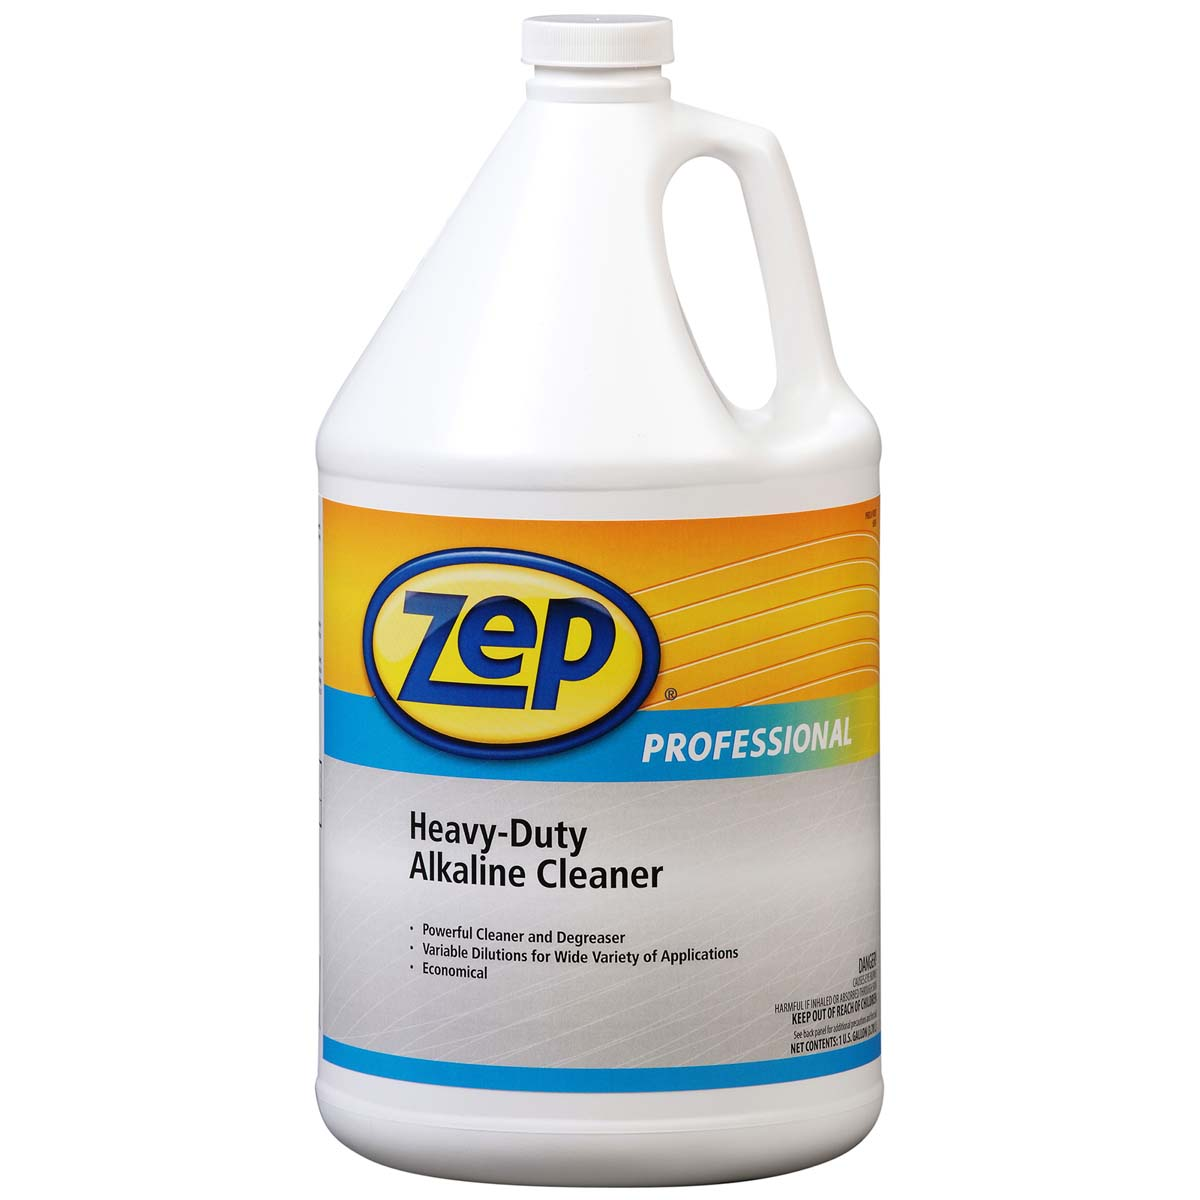 ZEP Heavy-Duty Alkaline Cleaner